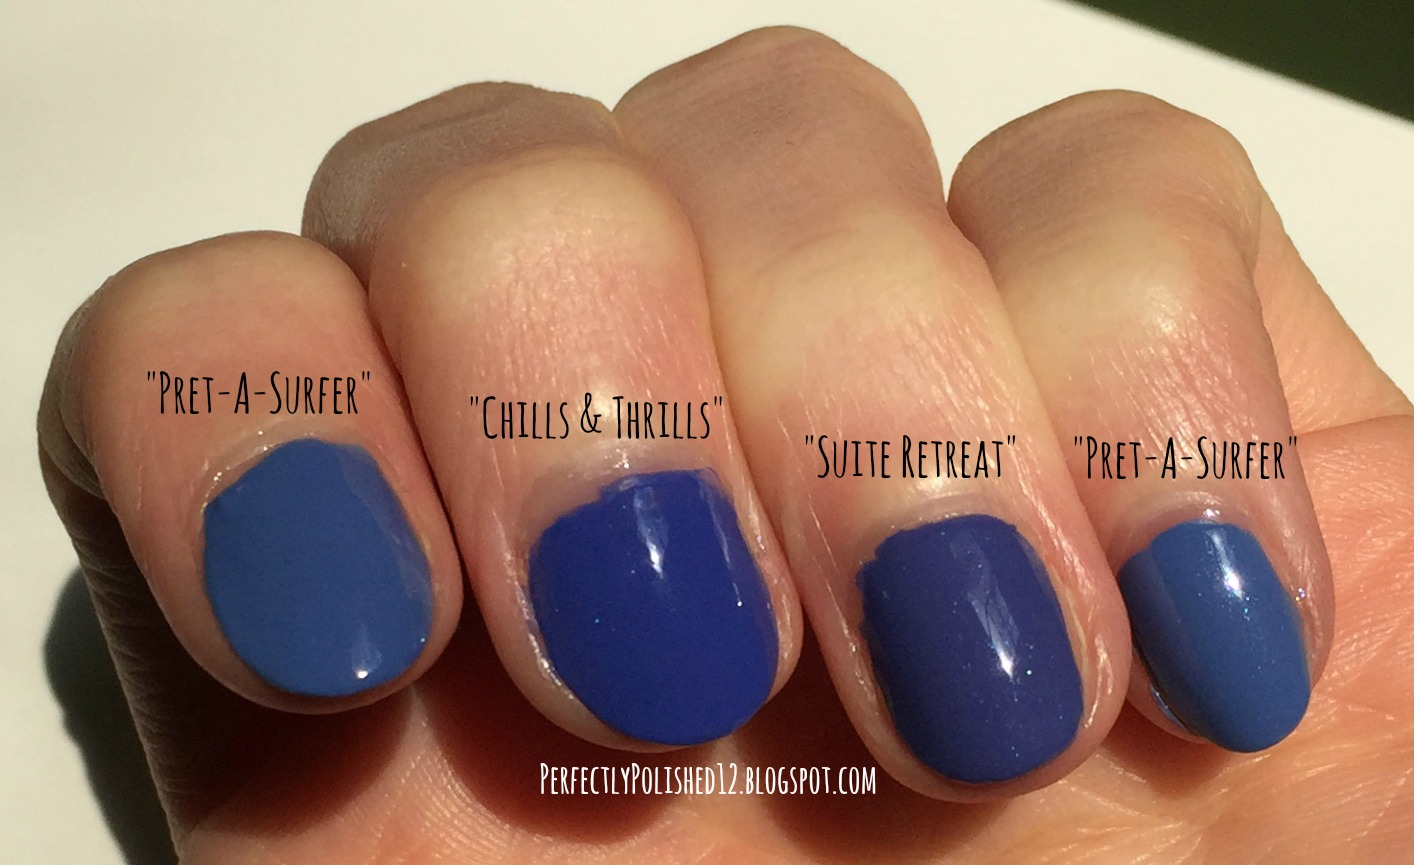 Perfectly Polished 12: Dupe Post: Royal Blue Essie Nail Polishes